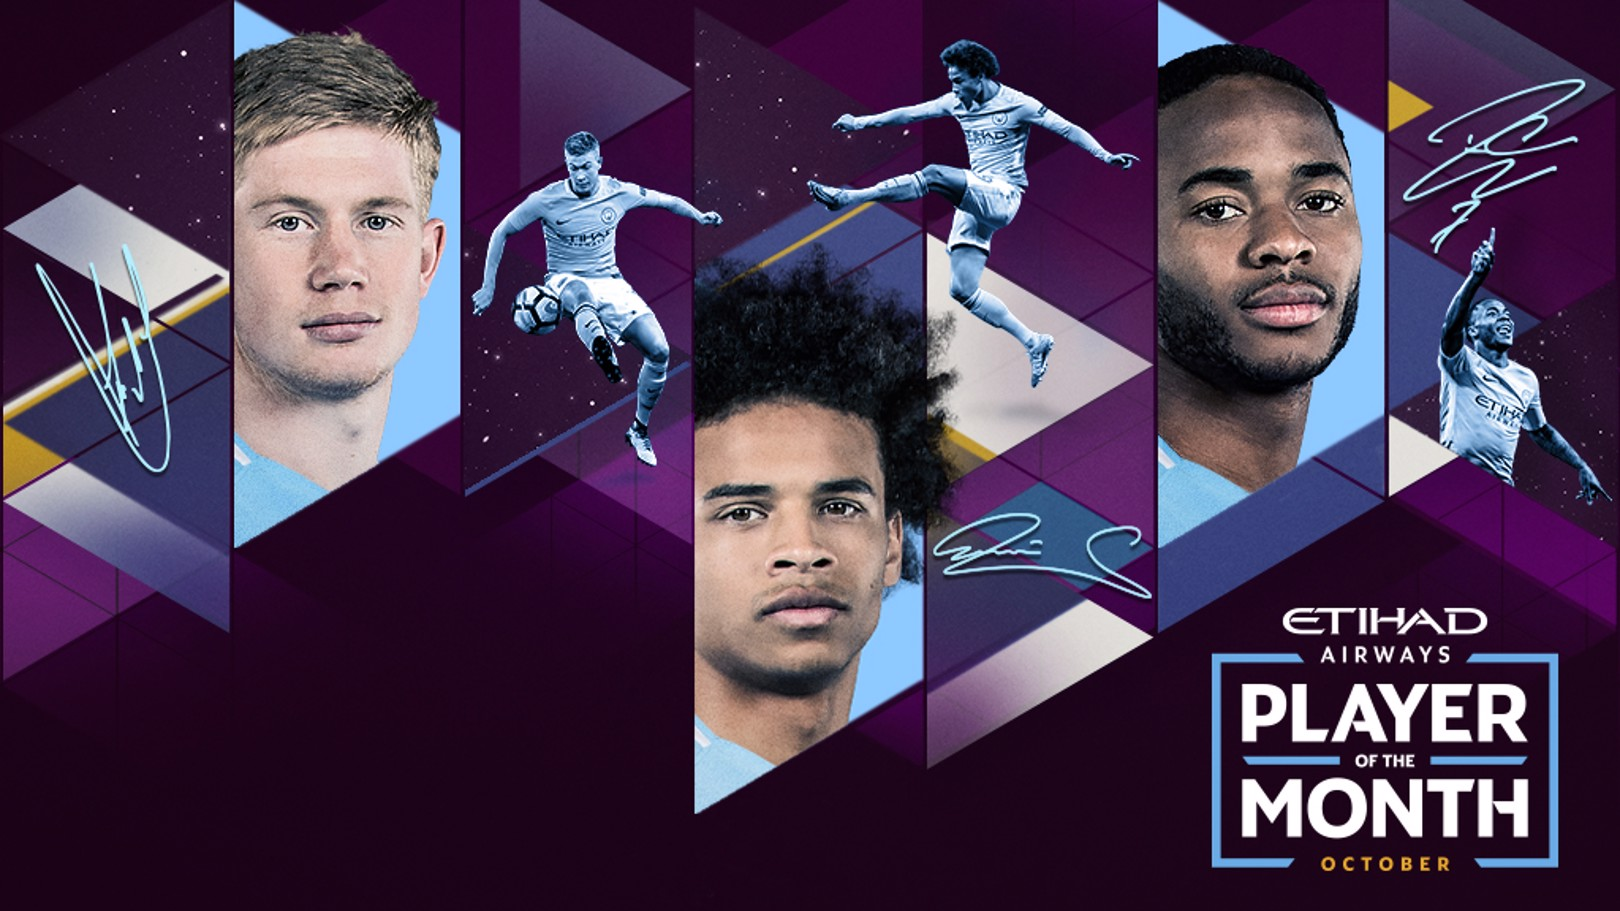 VOTE: Etihad Player of the Month October.